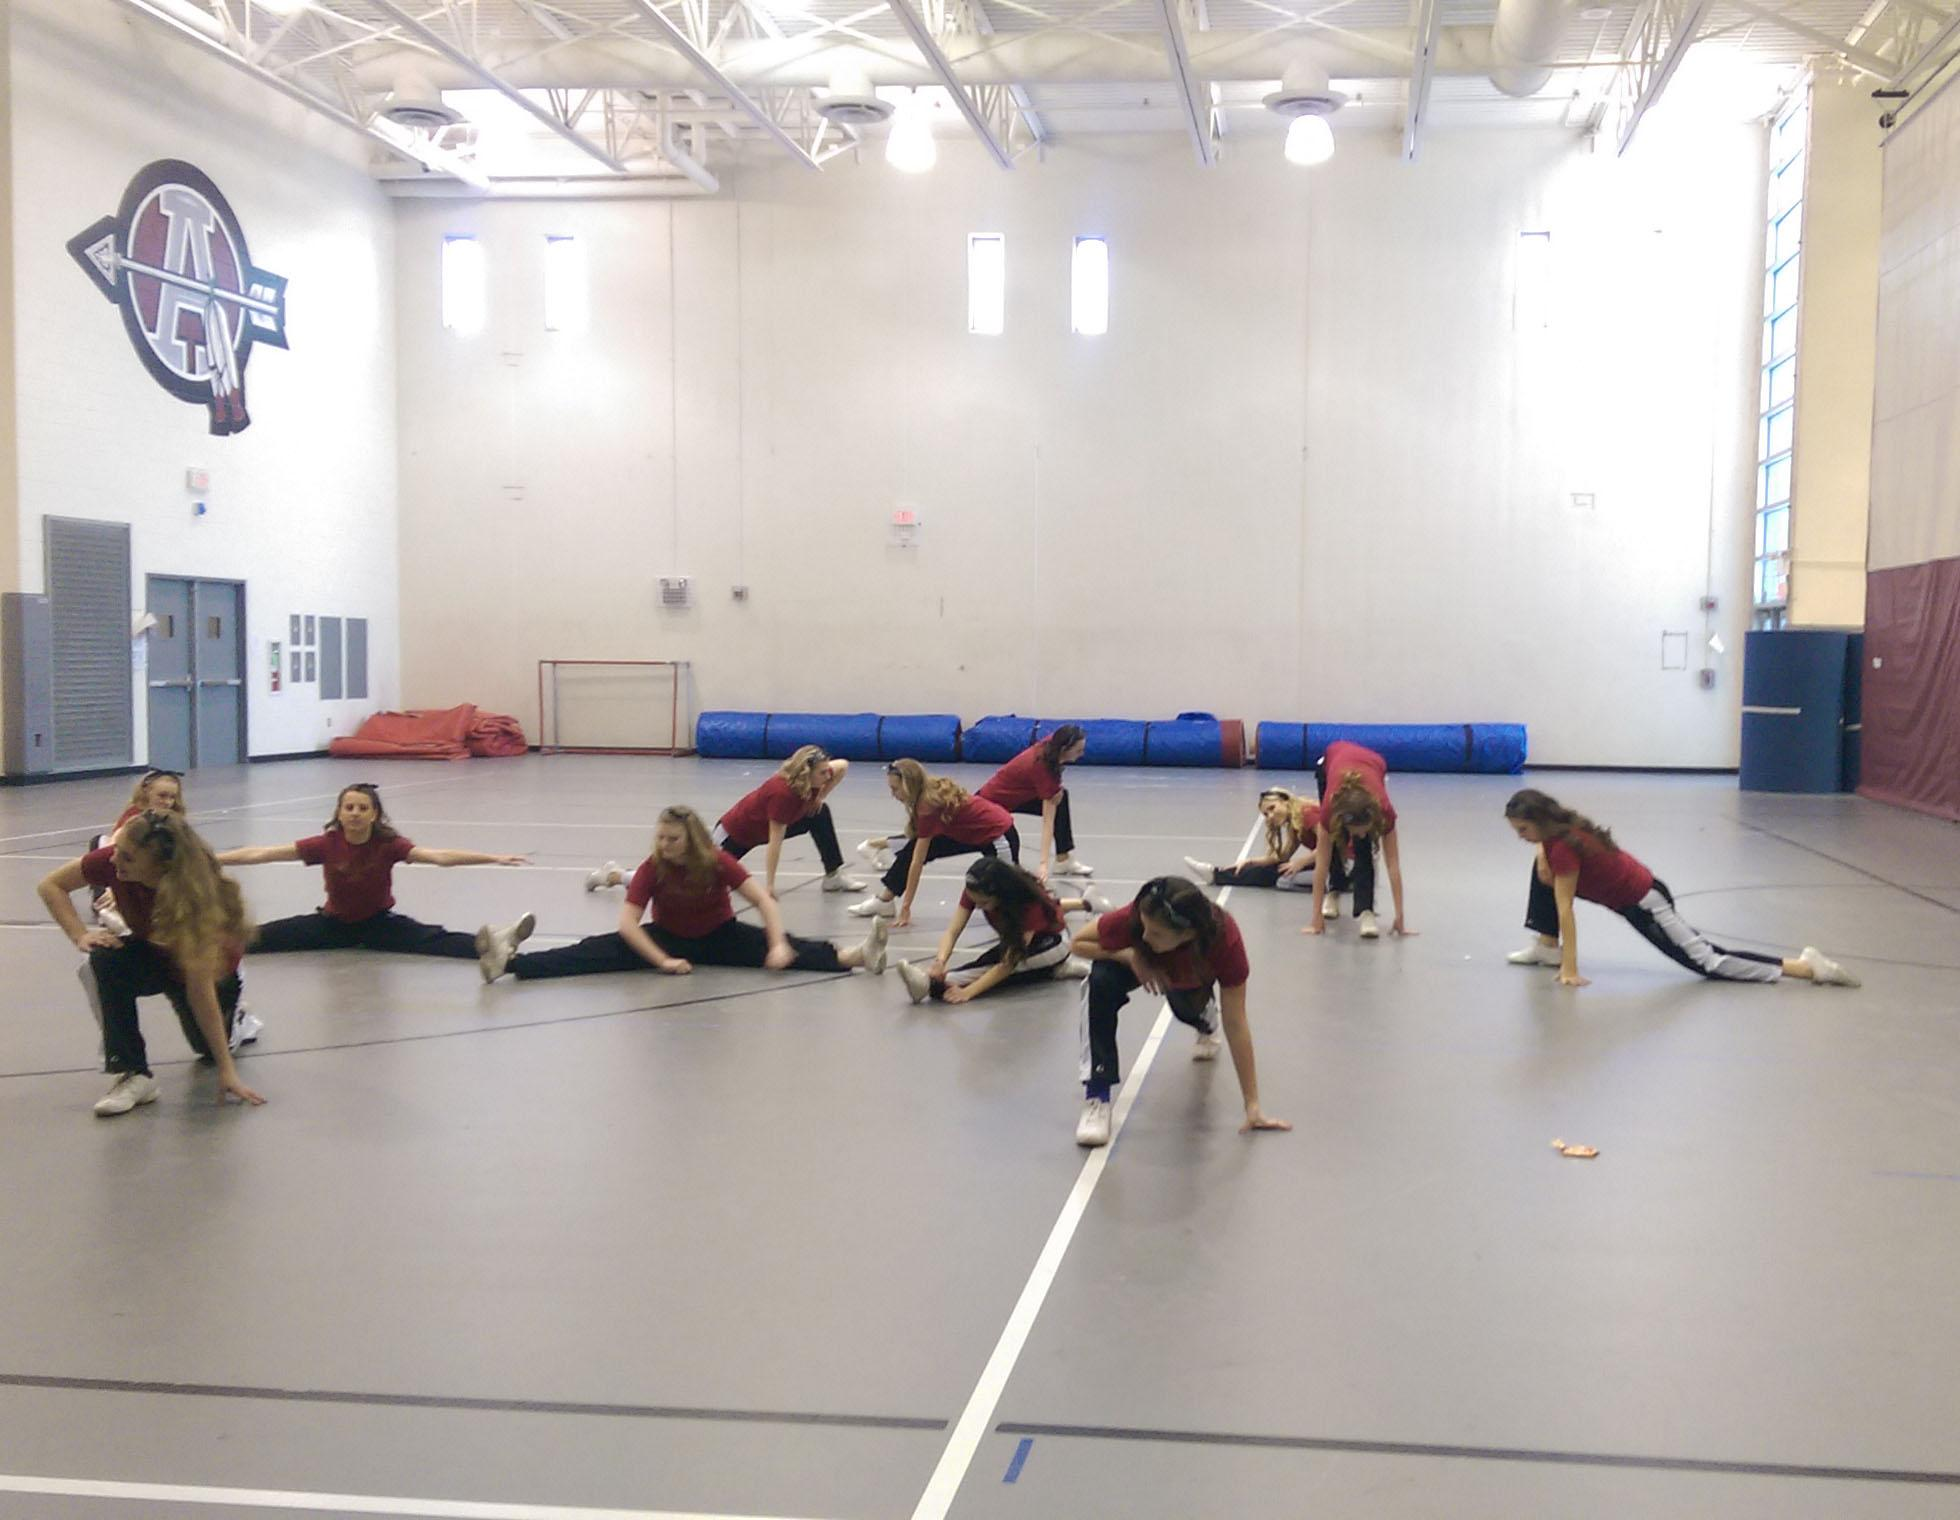 The Antioch varsity dance team stretches before their performance before the boys basketball game.